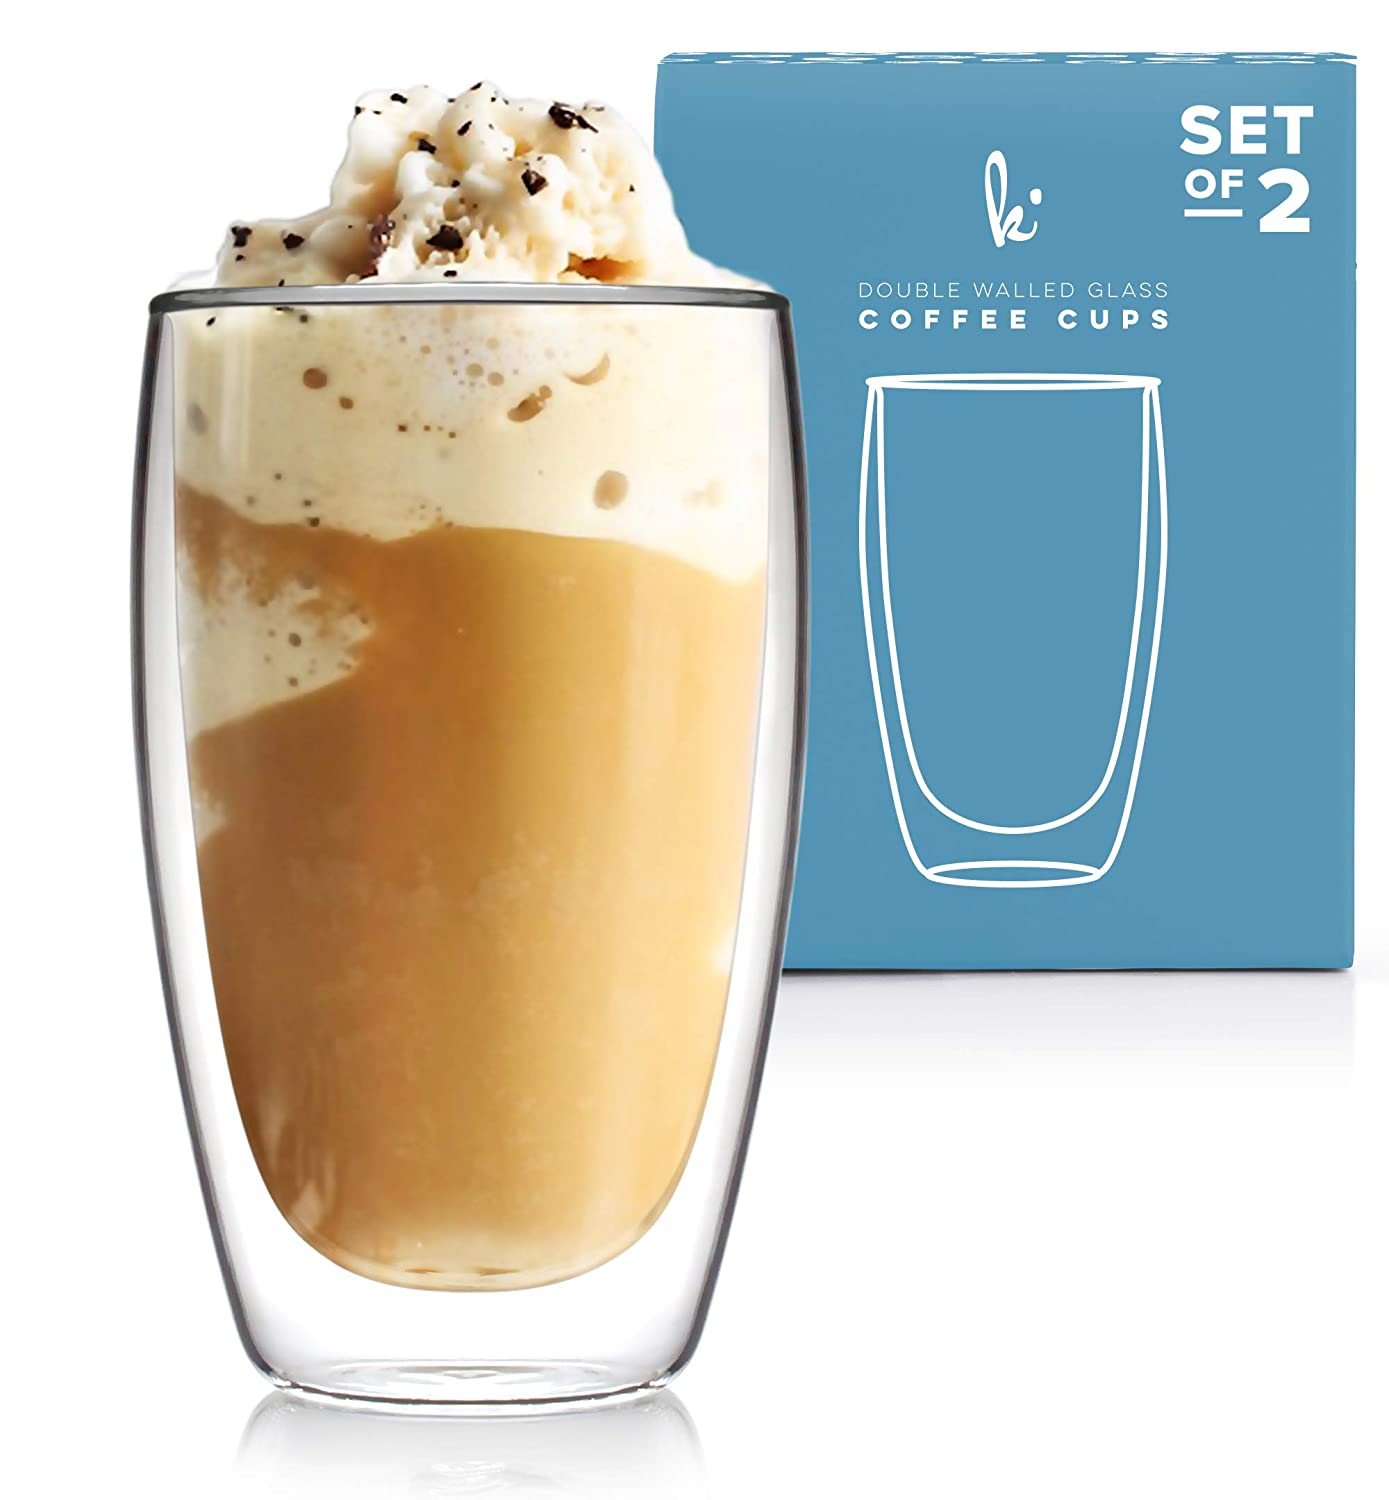 Coffee or Tea Glass Mugs Drinking Glasses Set of 2-15oz Double Walled Thermo Insulated Cups Latte Cappuccino Espresso Glassware